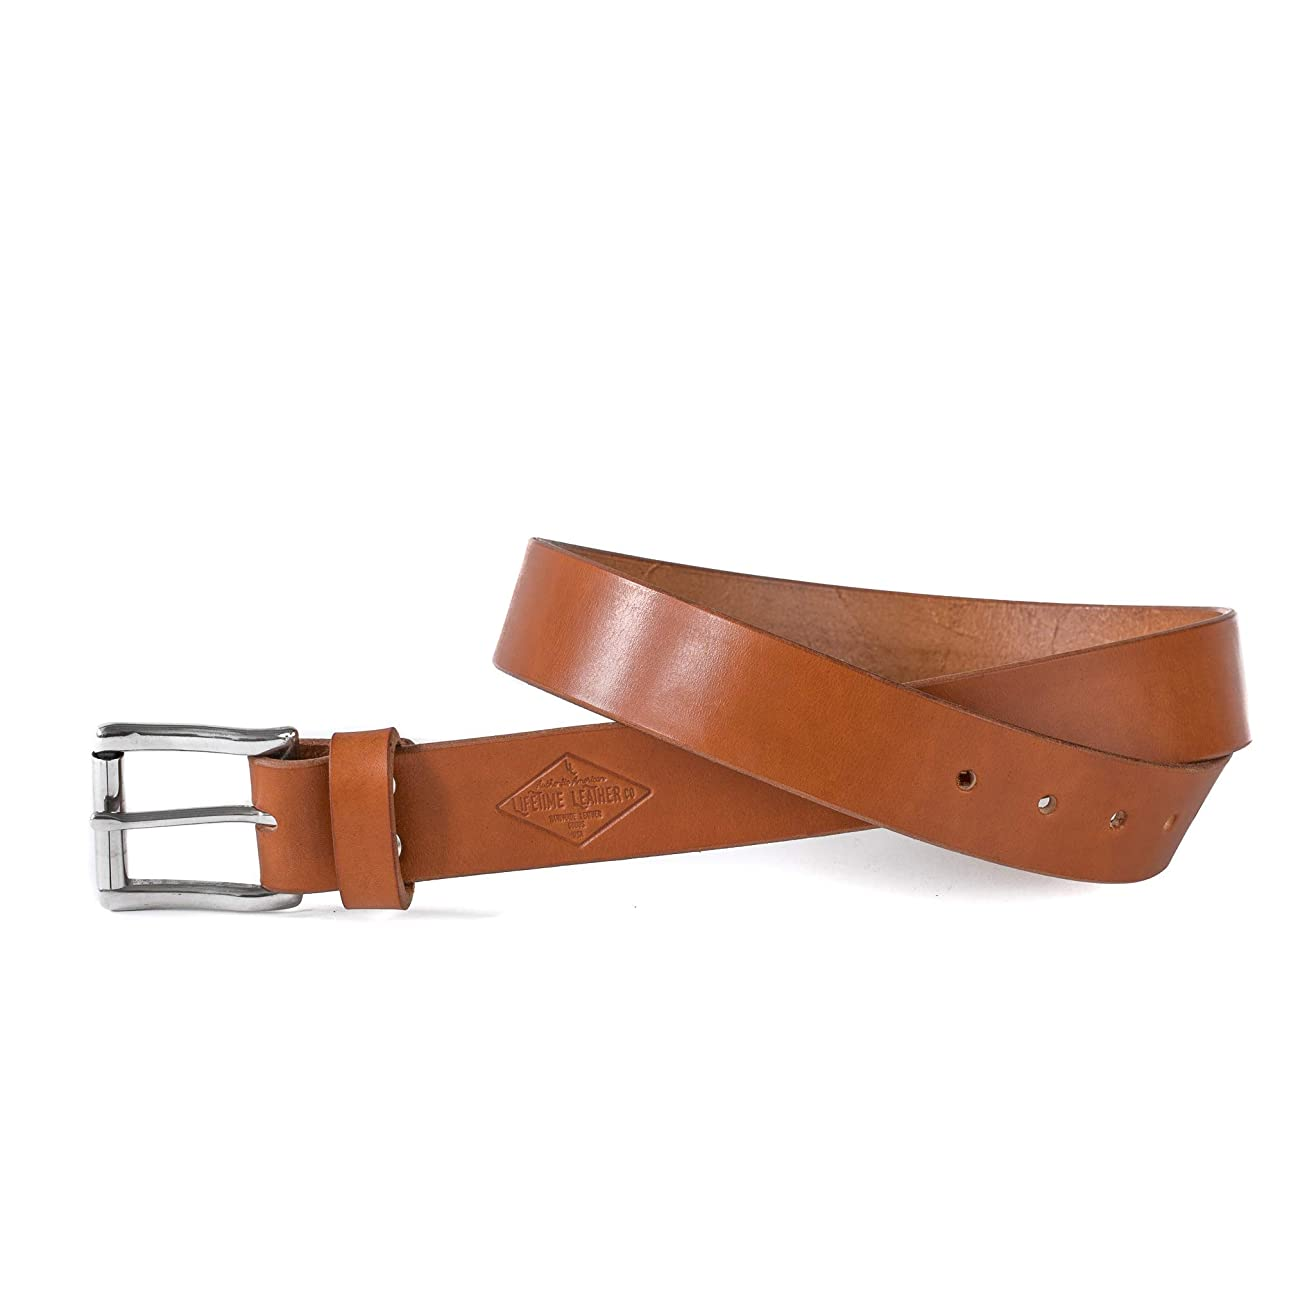 Tan Leather Belt, 1.5